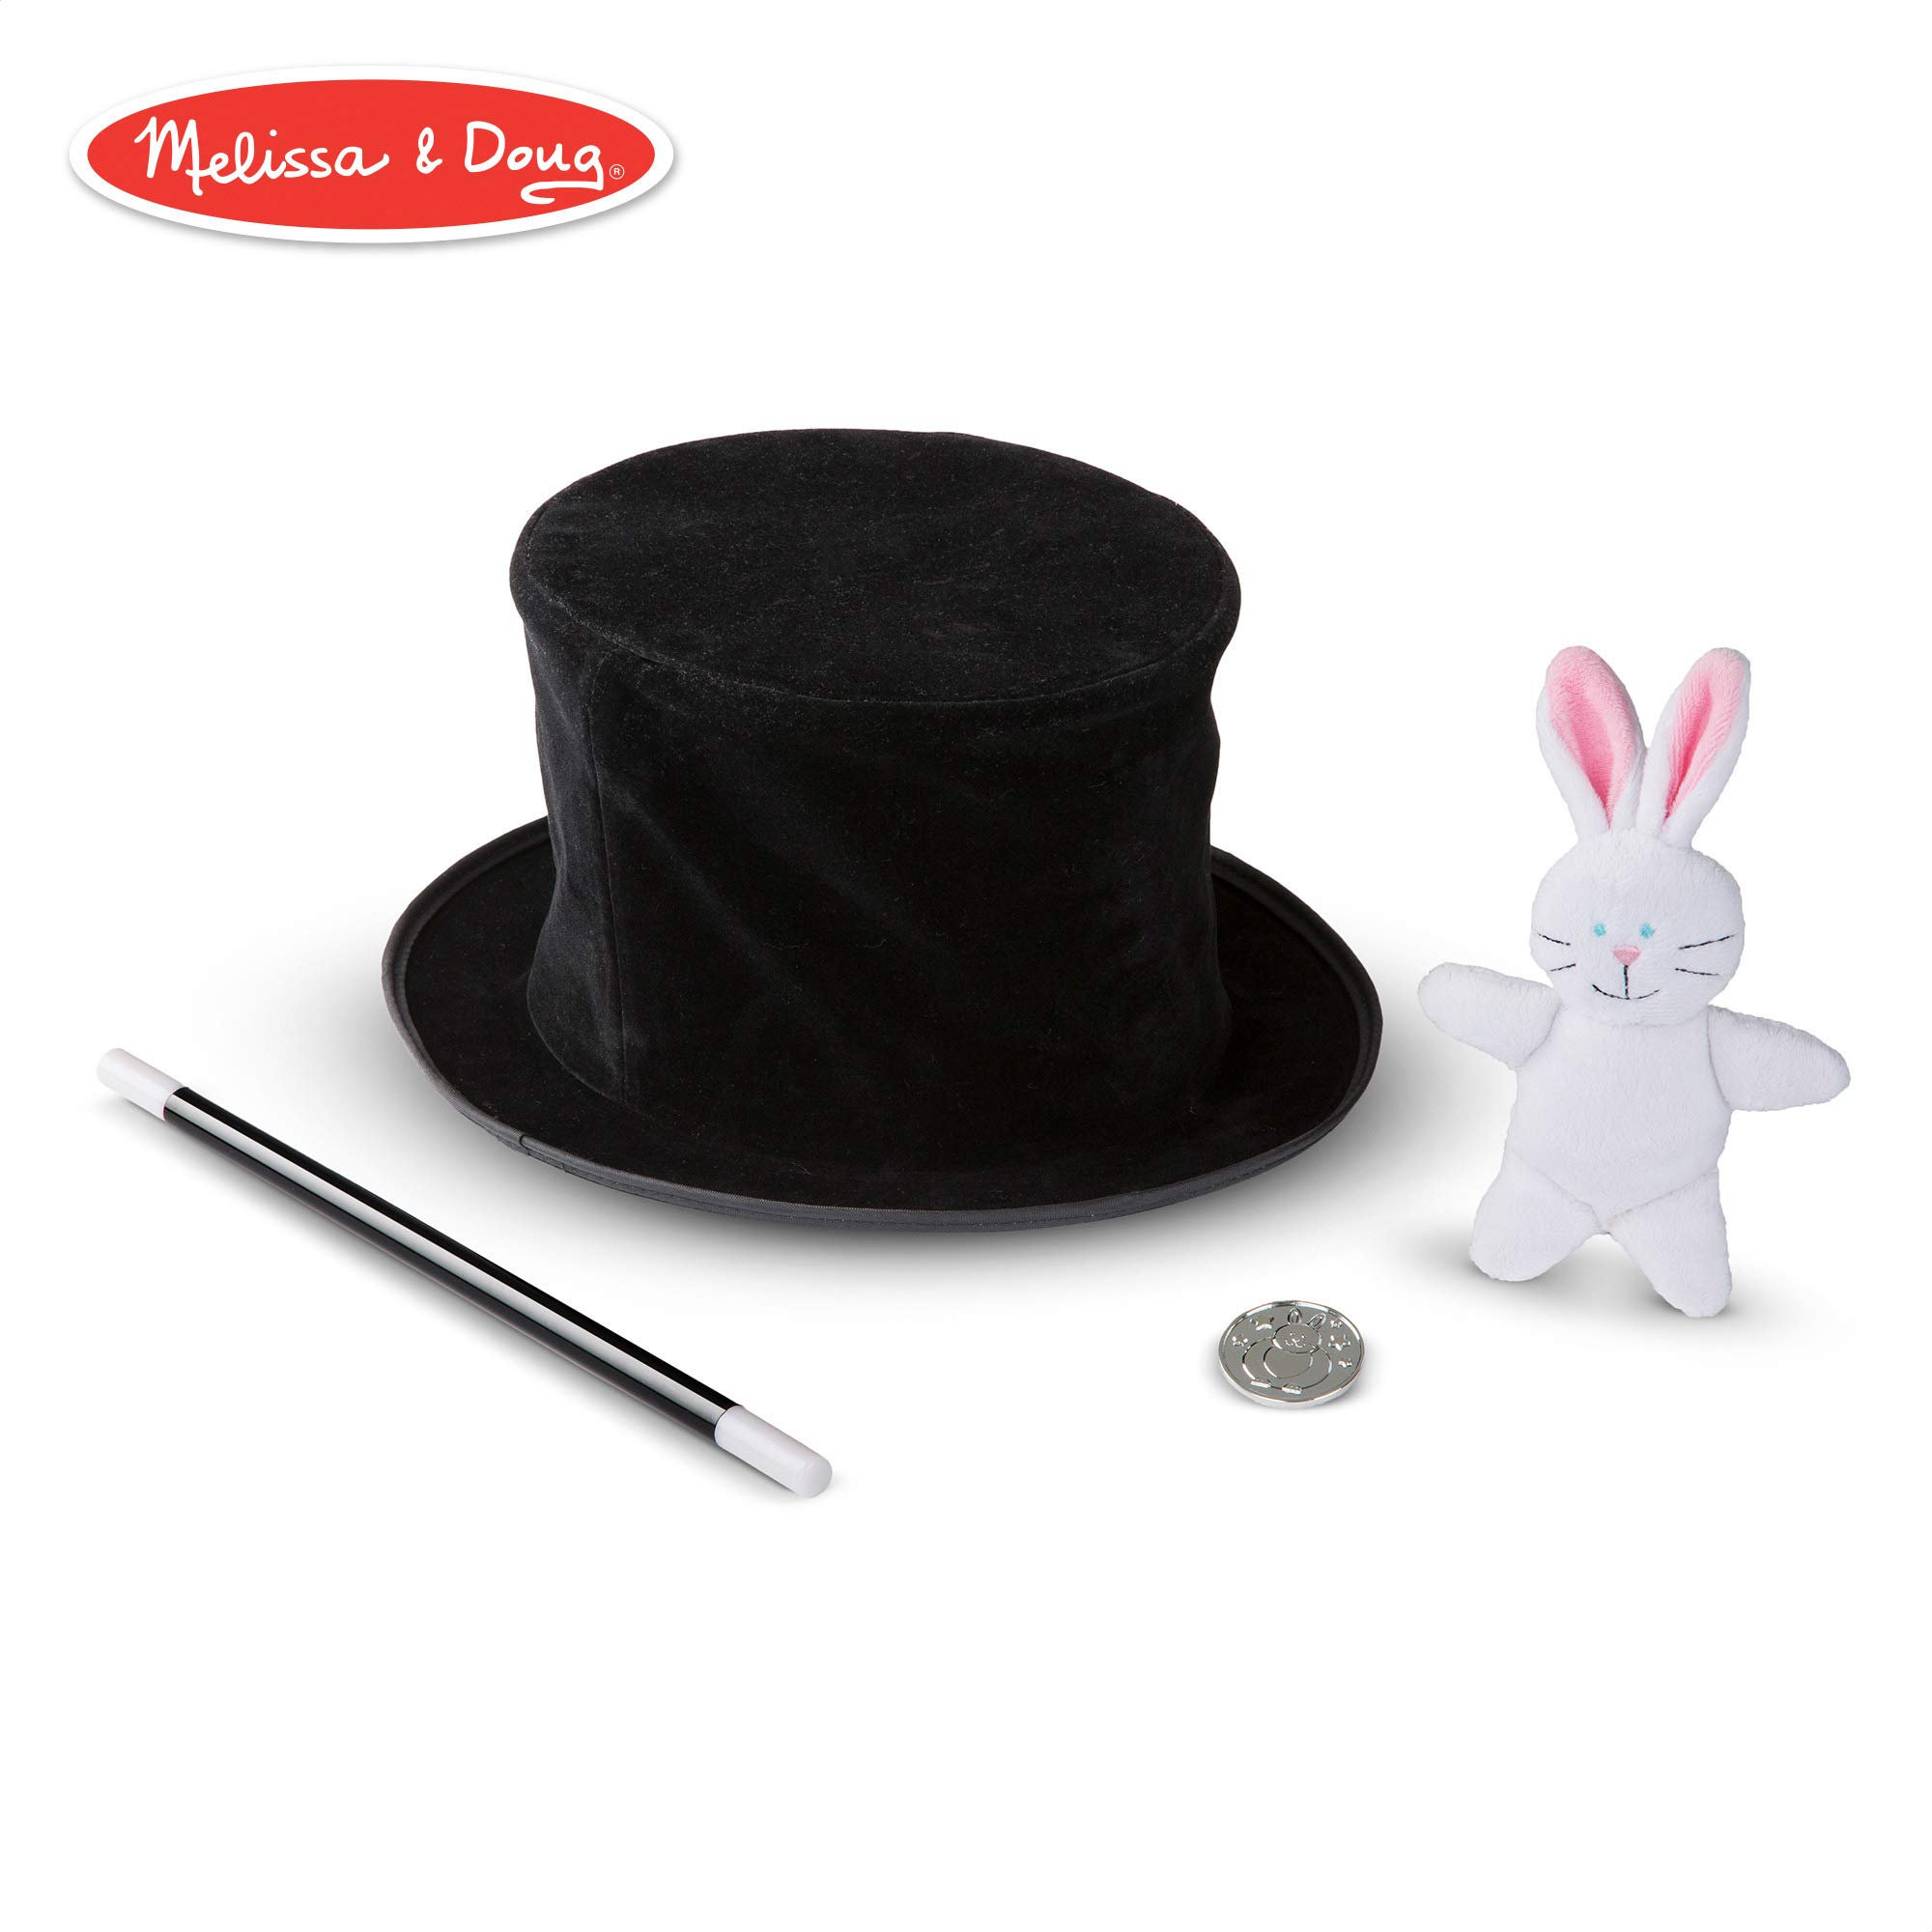 Melissa & Doug Magic in a Snap! Magician's Pop-Up Hat with Tricks (Illustrated Instructions, 4 Pieces) by Melissa & Doug